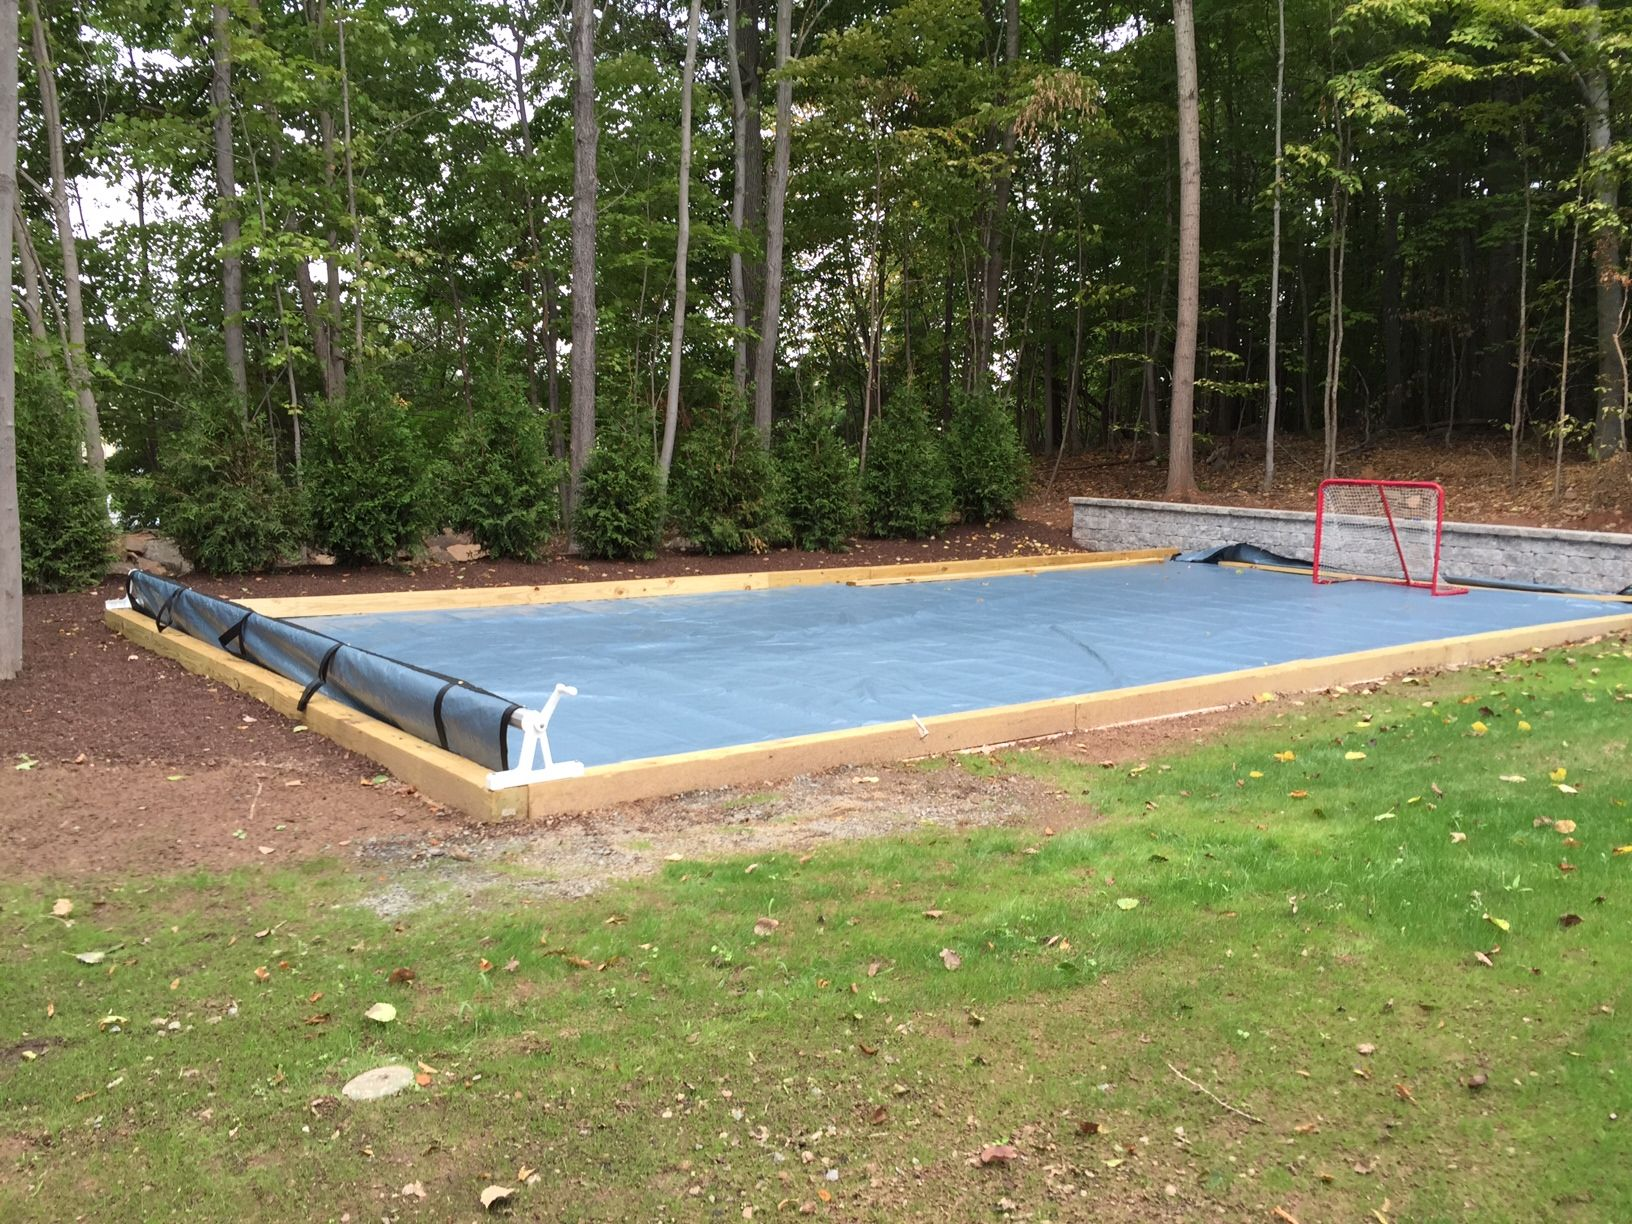 creative use of a pool cover to keep the synthetic ice ...